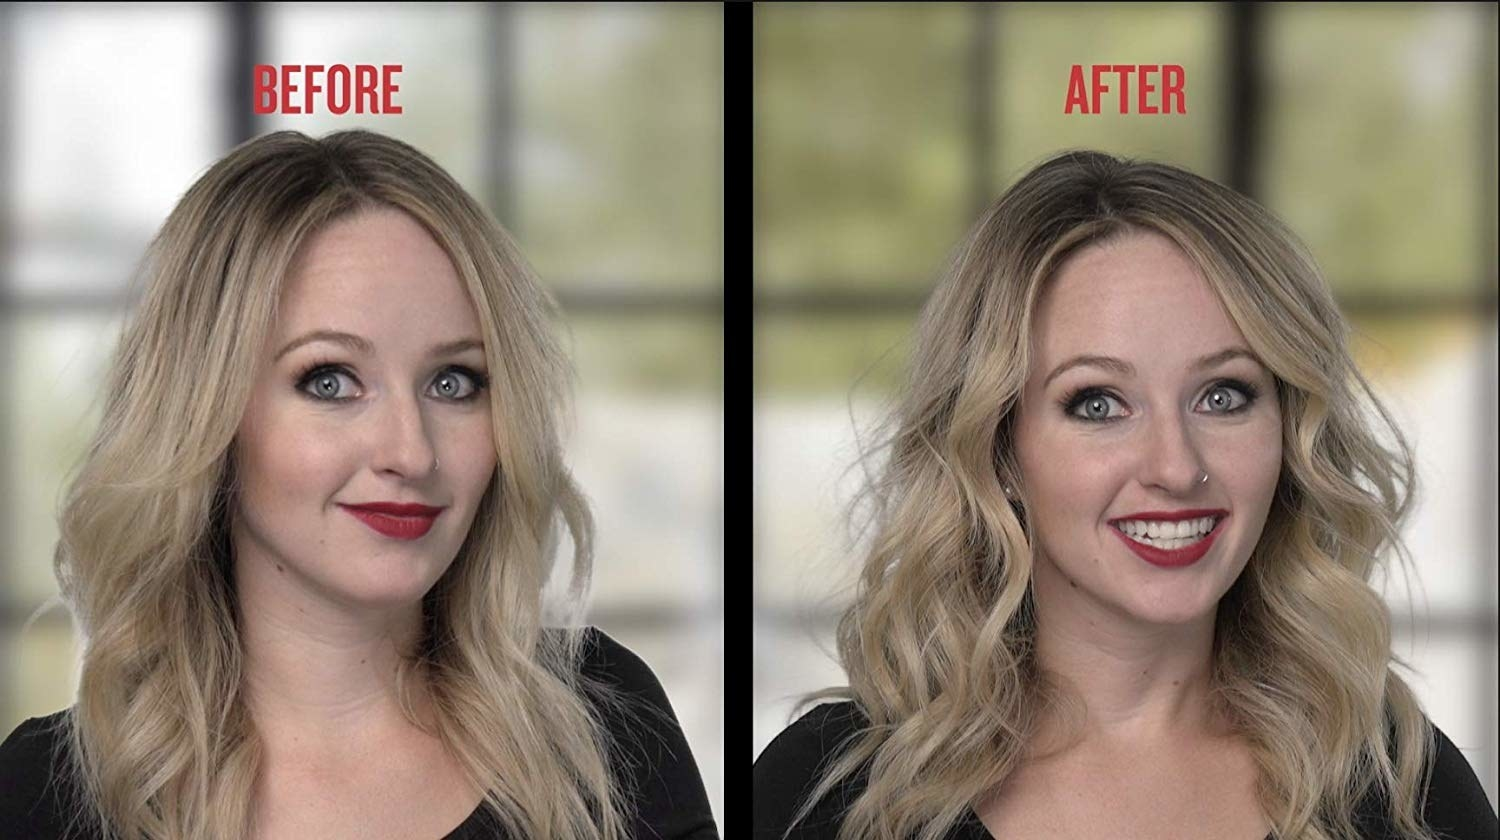 A model before/after with wavy-straight hair before and wavy-curly, voluminous hair after